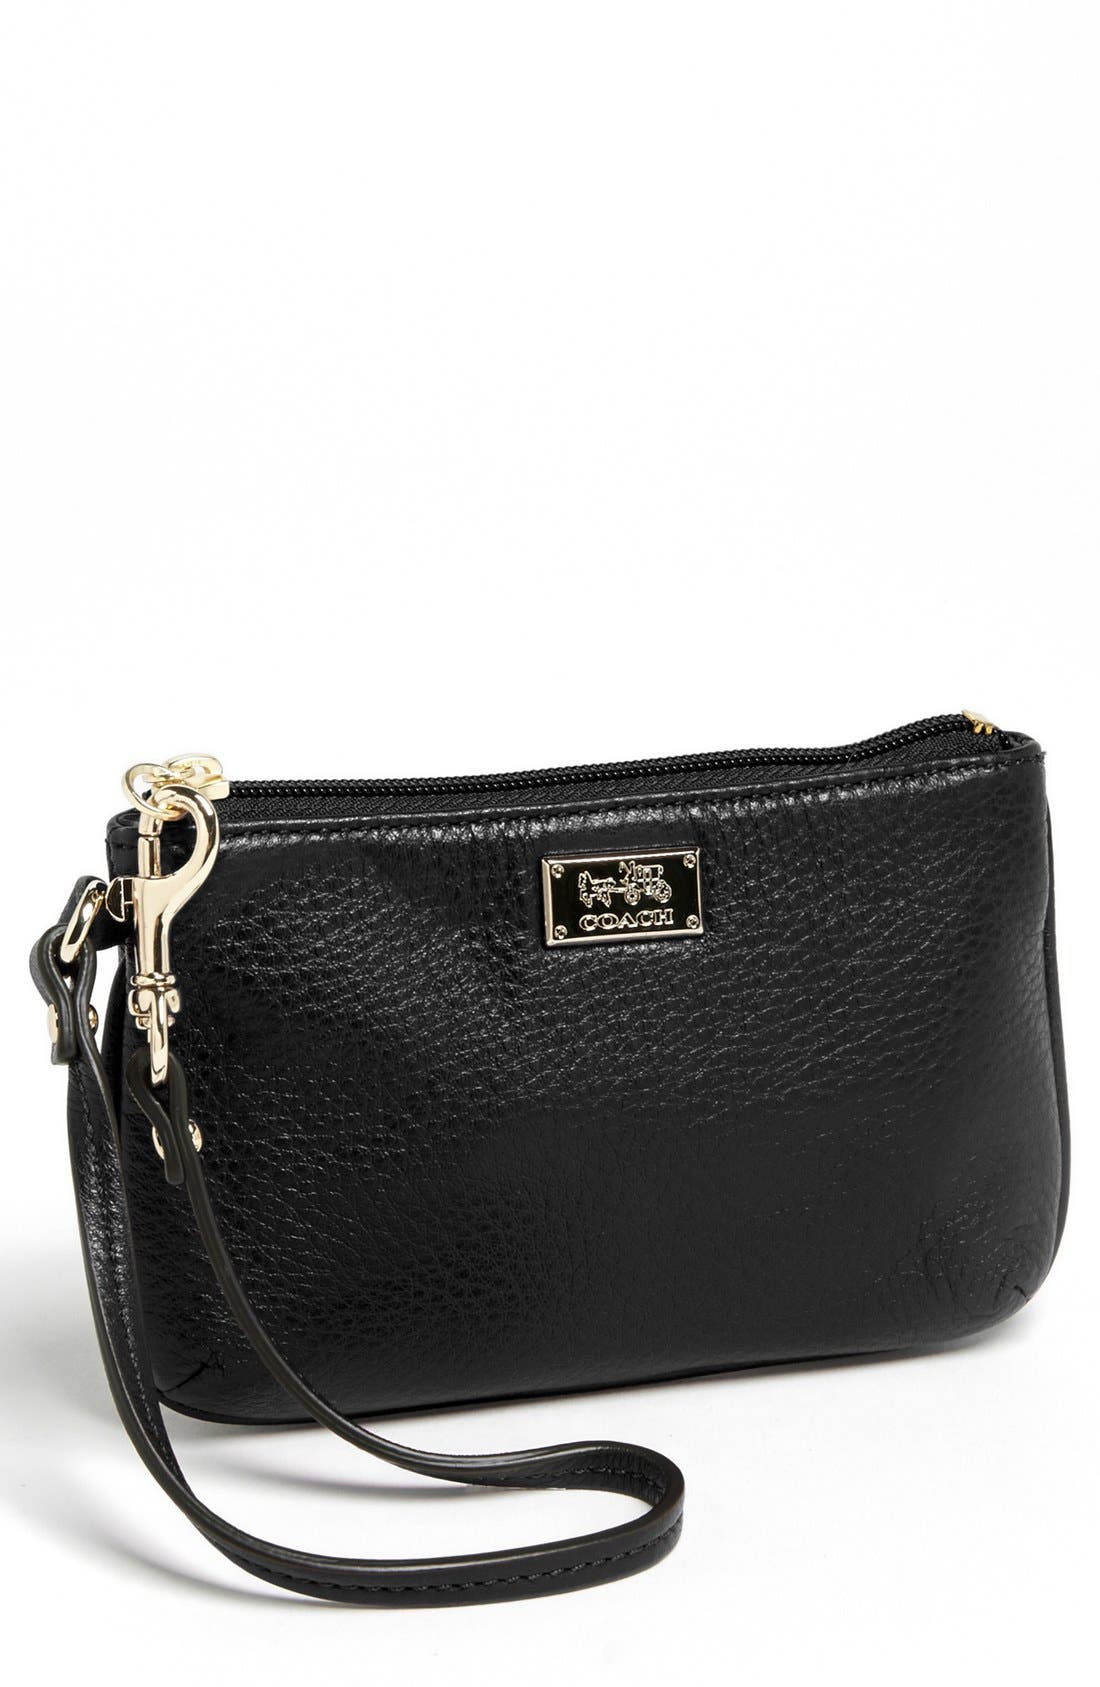 'Madison - Small' Leather Wristlet, Main, color, 001